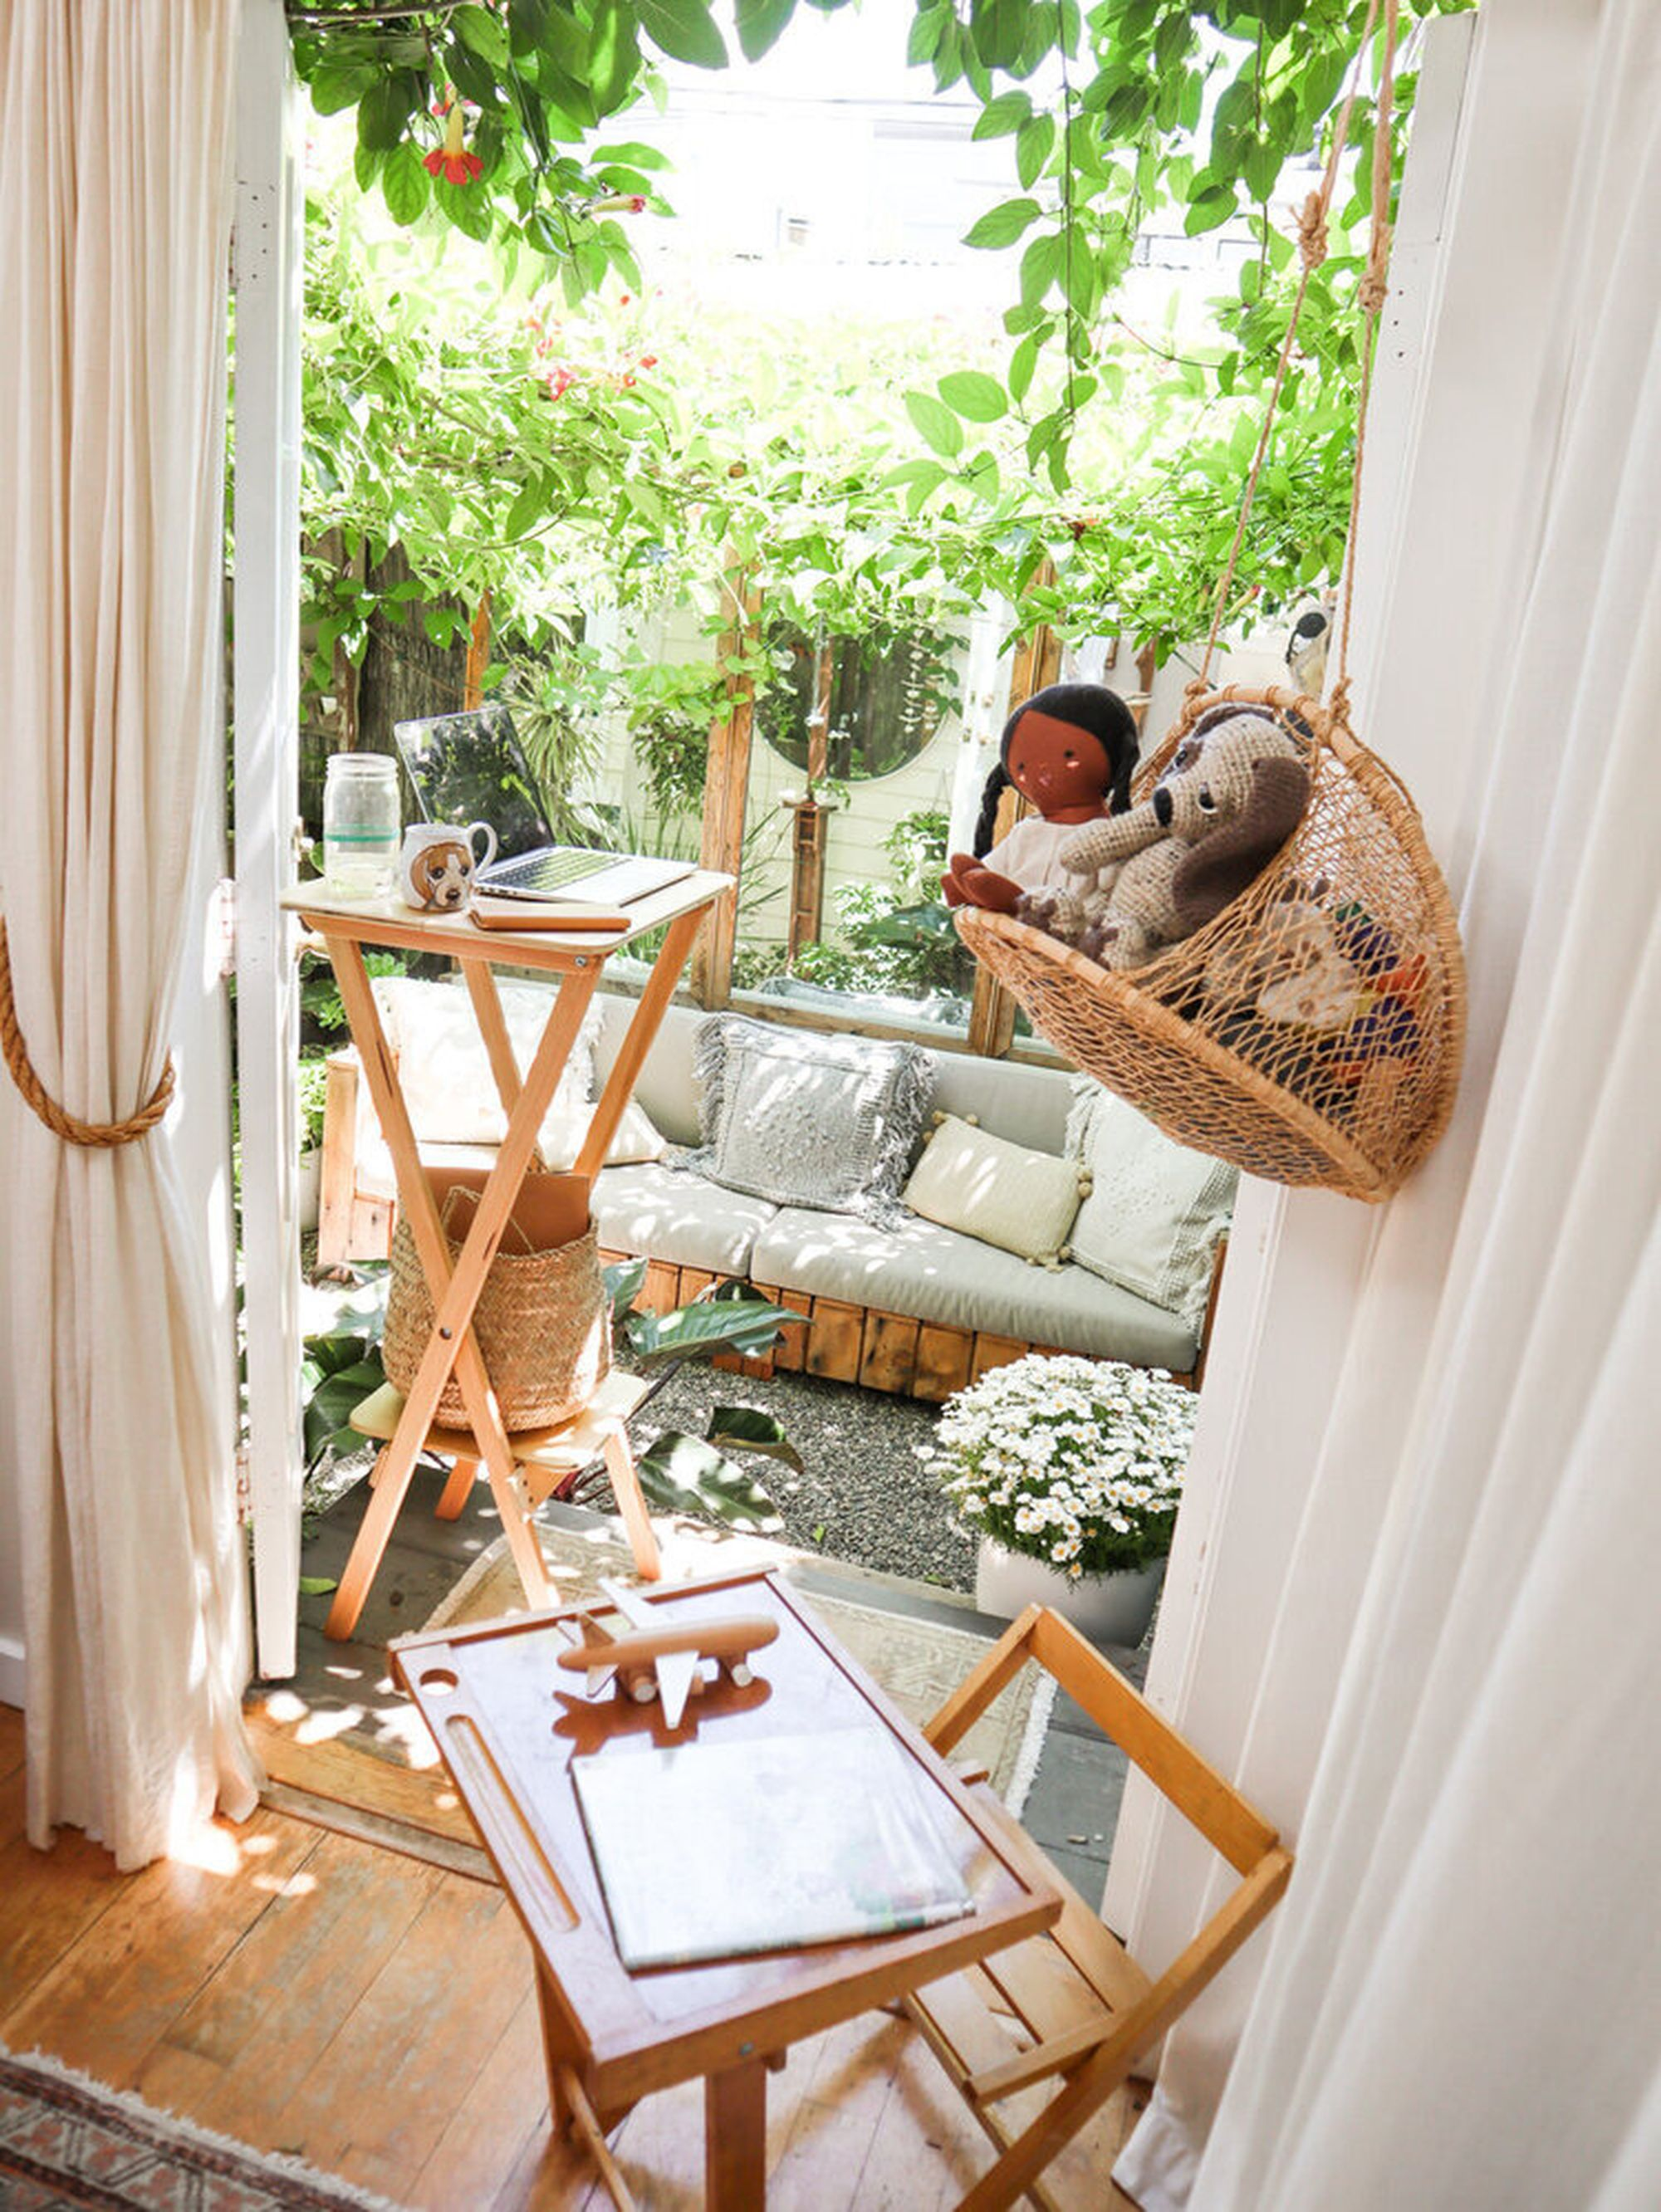 How Our Family Finds Comfort in a 400-Square-Foot Home